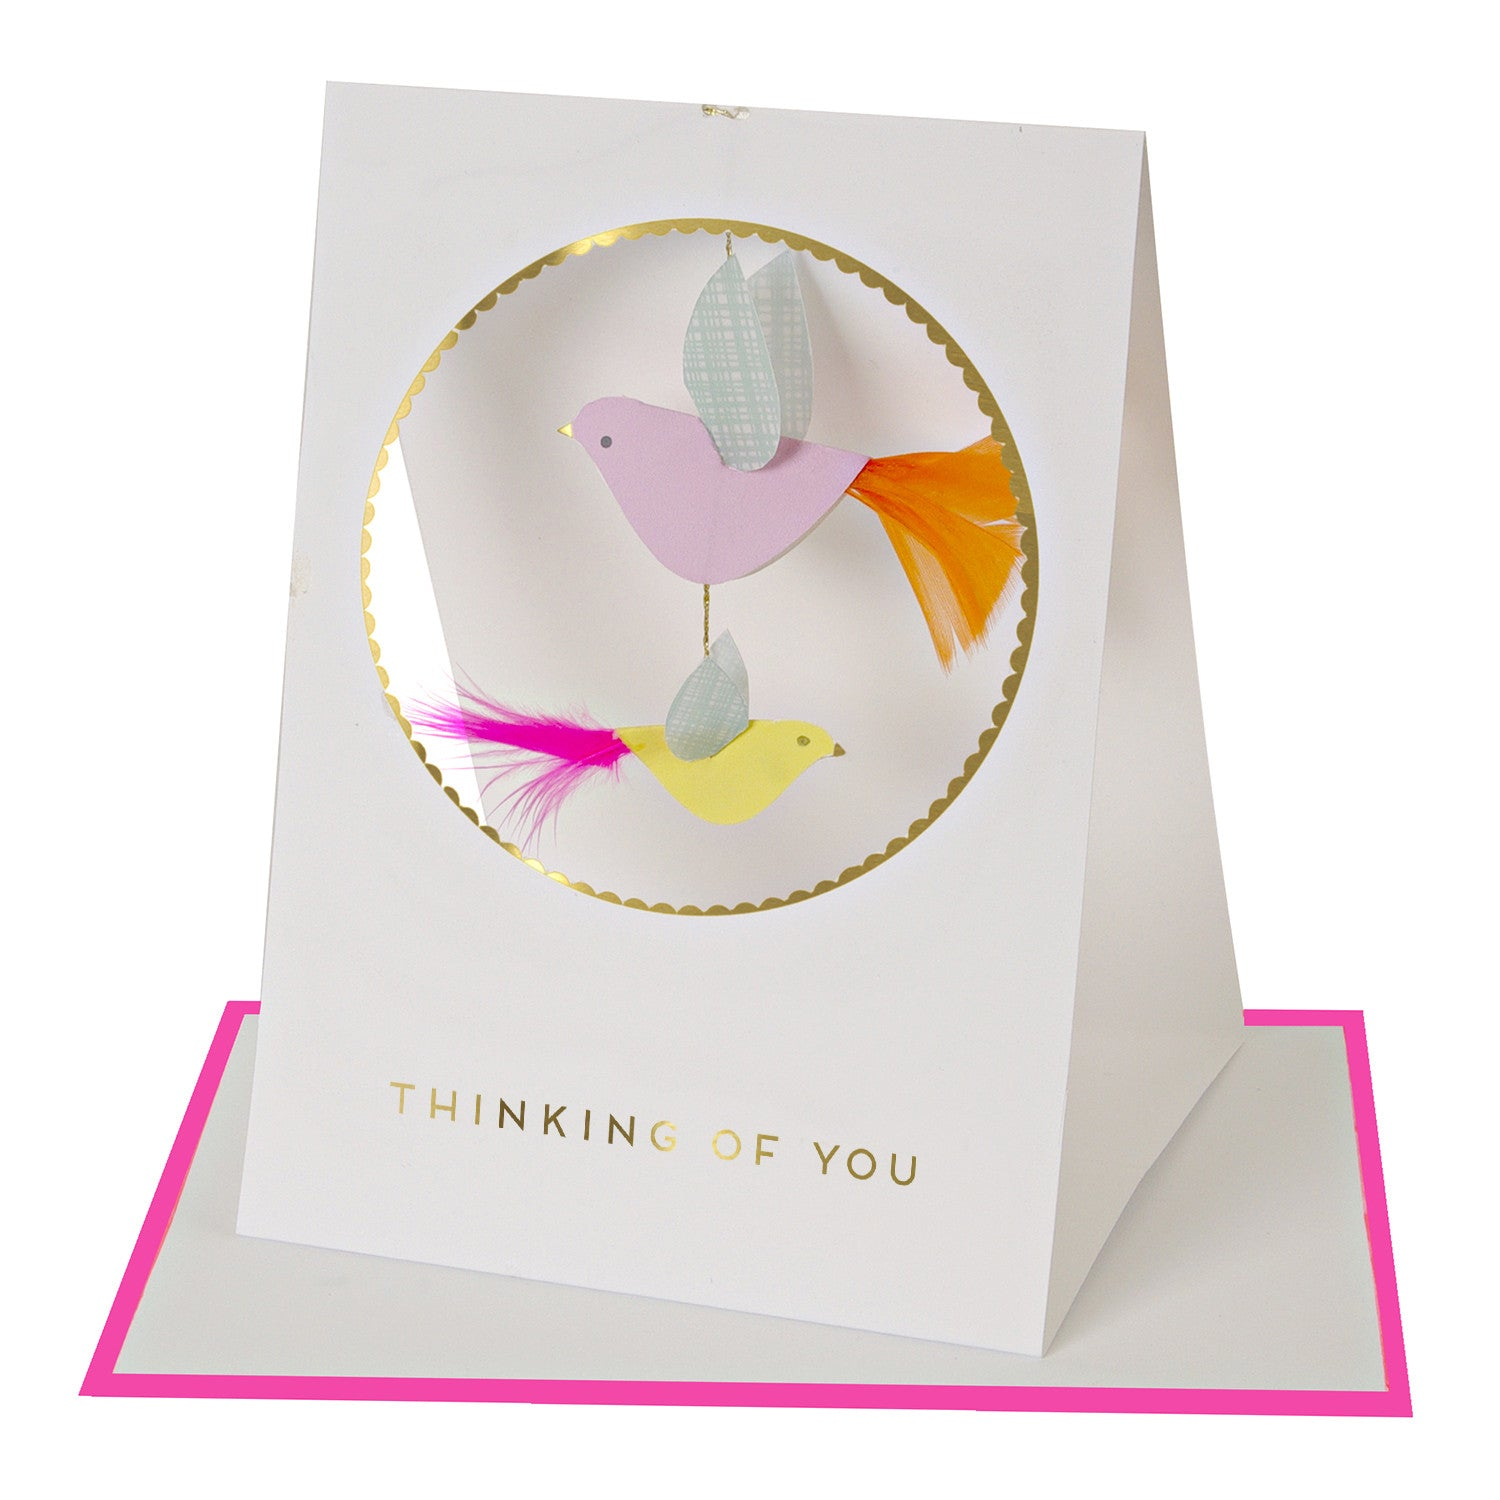 Thinking of you Sympathy Greeting Card by Meri Meri - Little Citizens Boutique